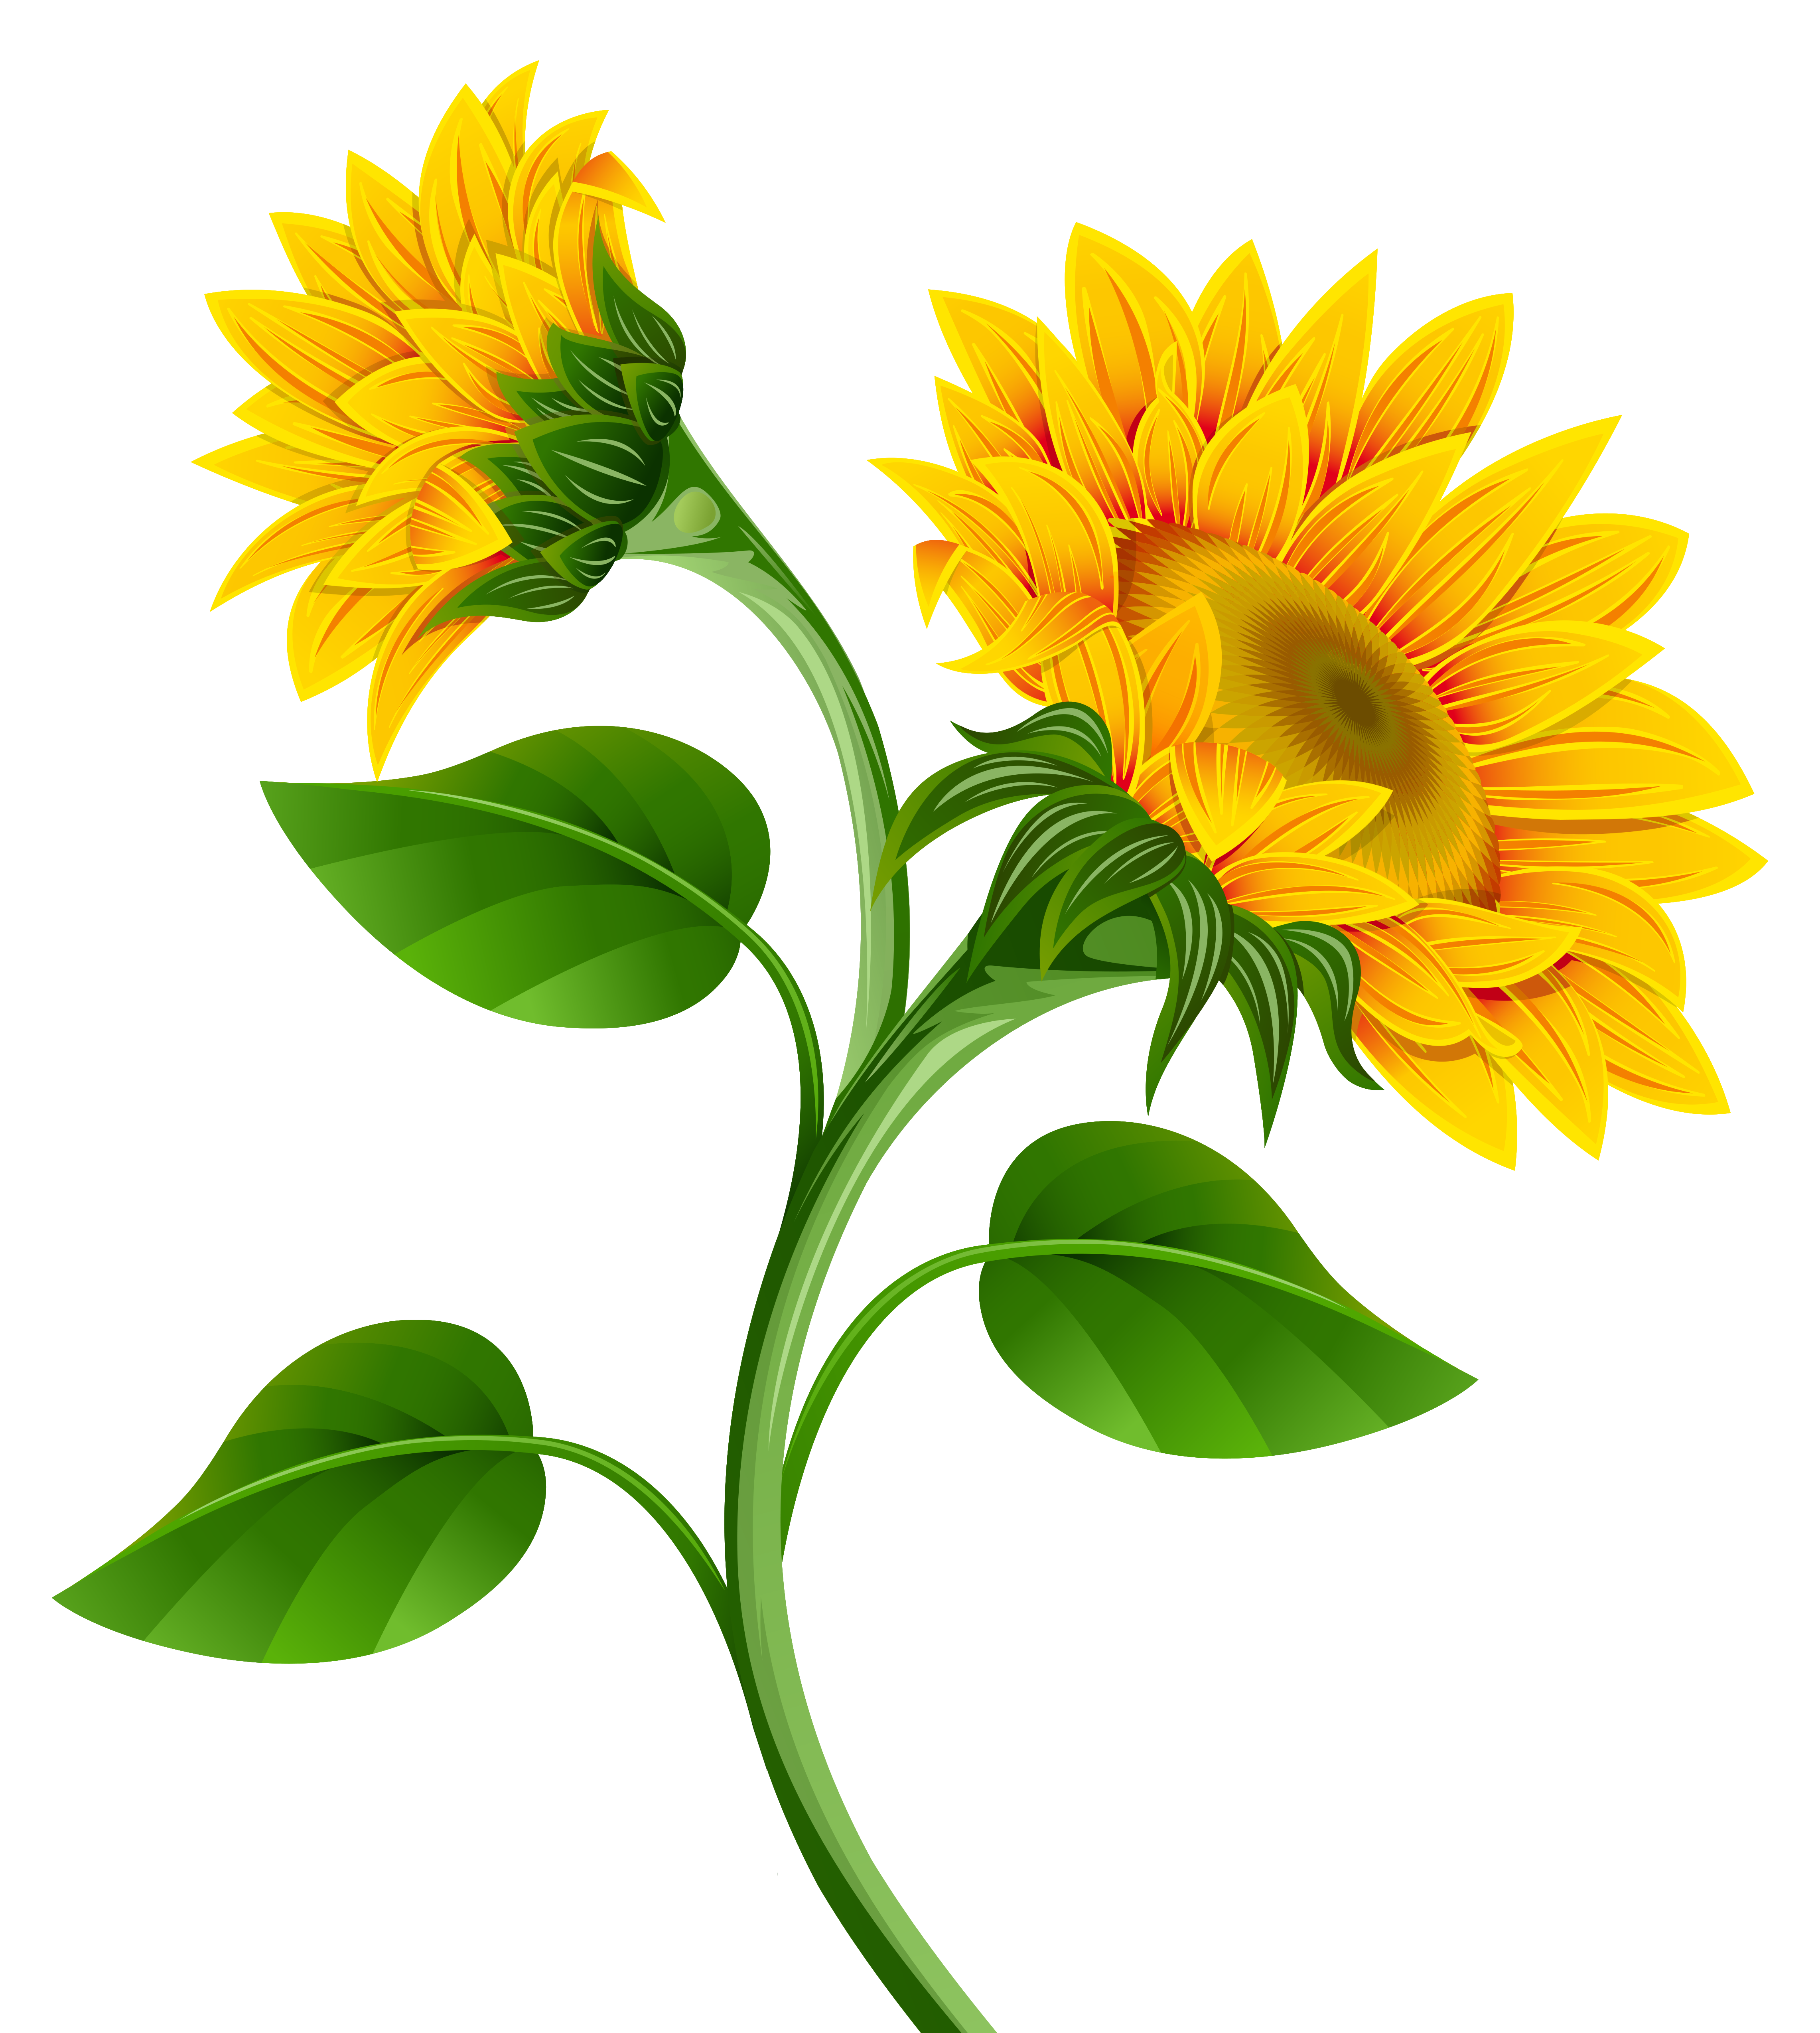 picture download Sunflowers clipart. Png image gallery yopriceville.